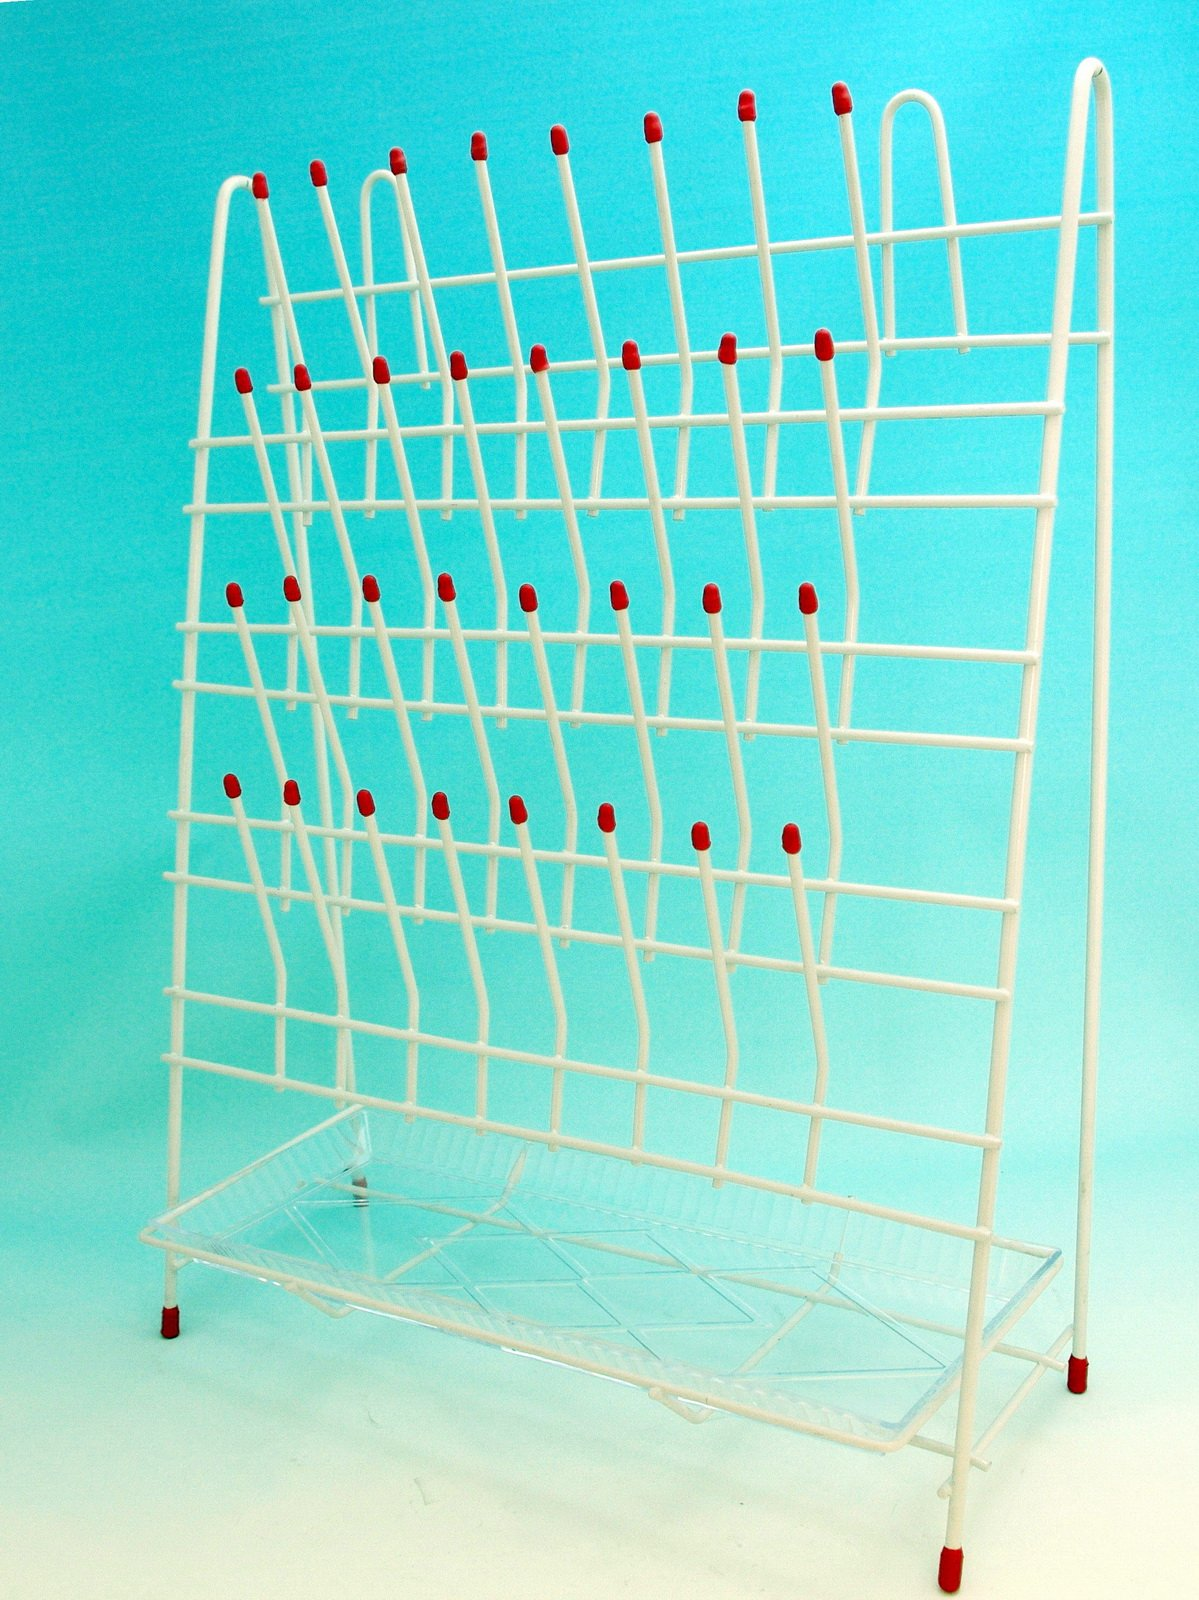 Beyondsupply-laboratory Drying / Draining Rack 55 Pegs with Drain Pan